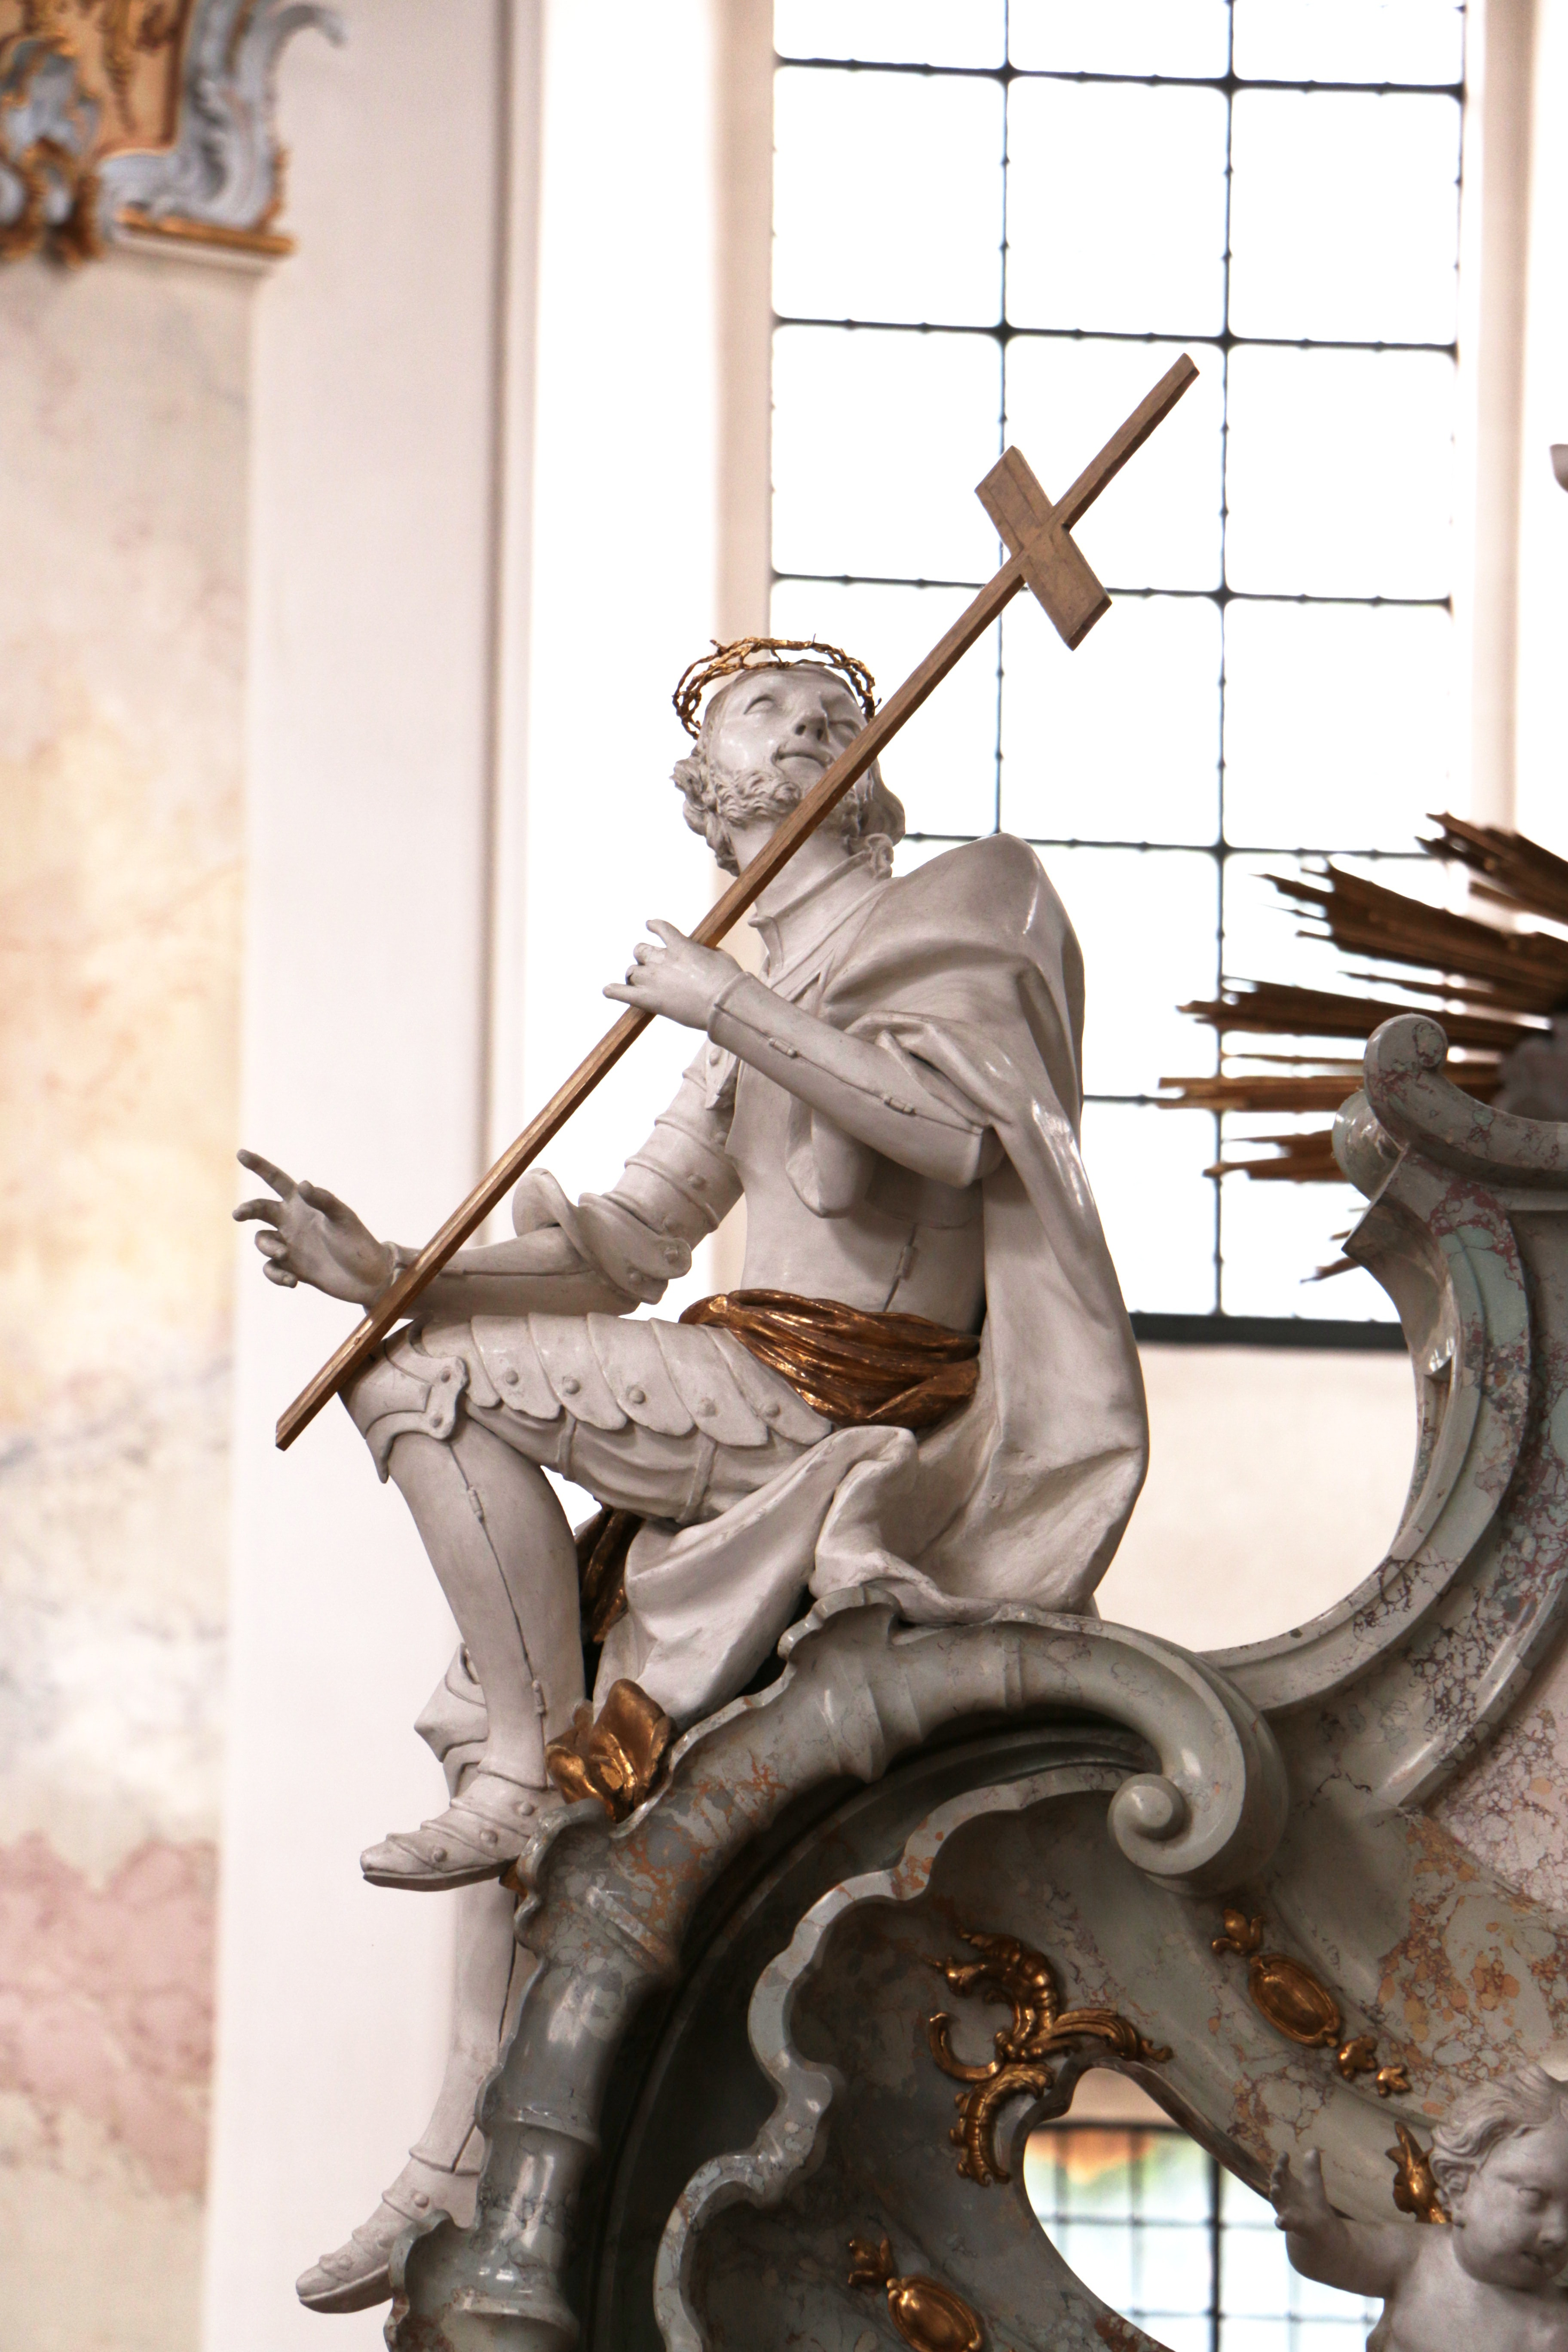 A sculpture of a warrior carrying a cross sitting on the corner of a mantelpiece while looking up